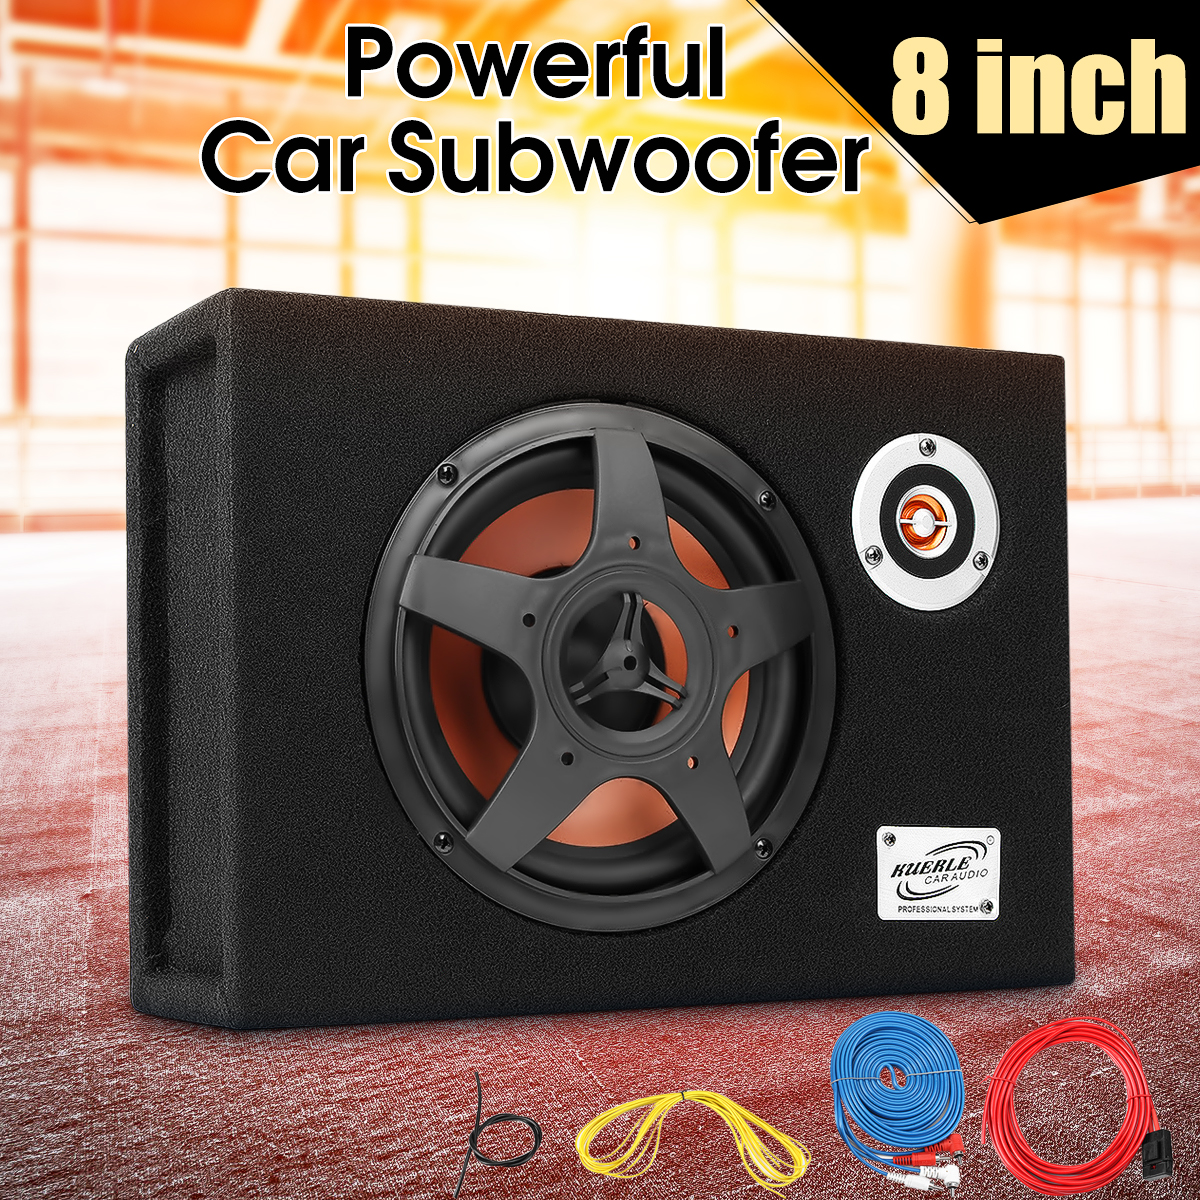 8 480w Car Subwoofer 12V Slim Under-Seat Speaker 21mm Car Audio Sub Woofe 8 inch Car High Power Amplifier Speaker Super Bass 12v high power 120w 8 inch 10 inch 12 inch subwoofer car core subwoofer amplifier board pure tone